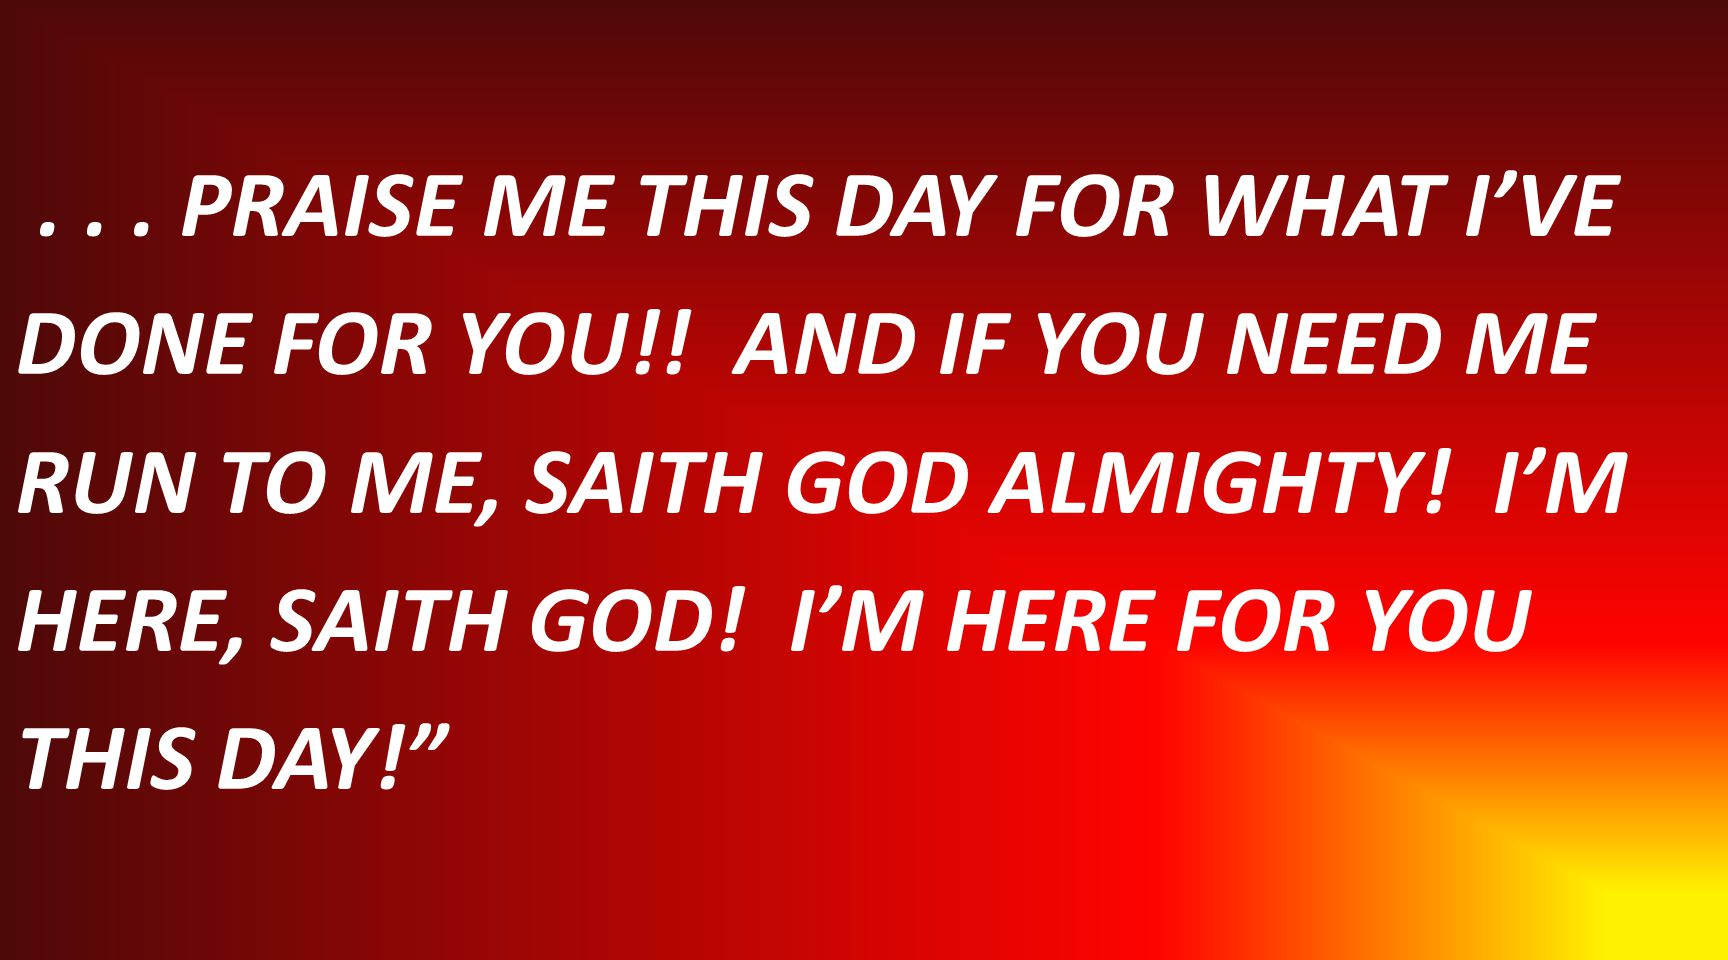 ... PRAISE ME THIS DAY FOR WHAT I'VE DONE FOR YOU!.